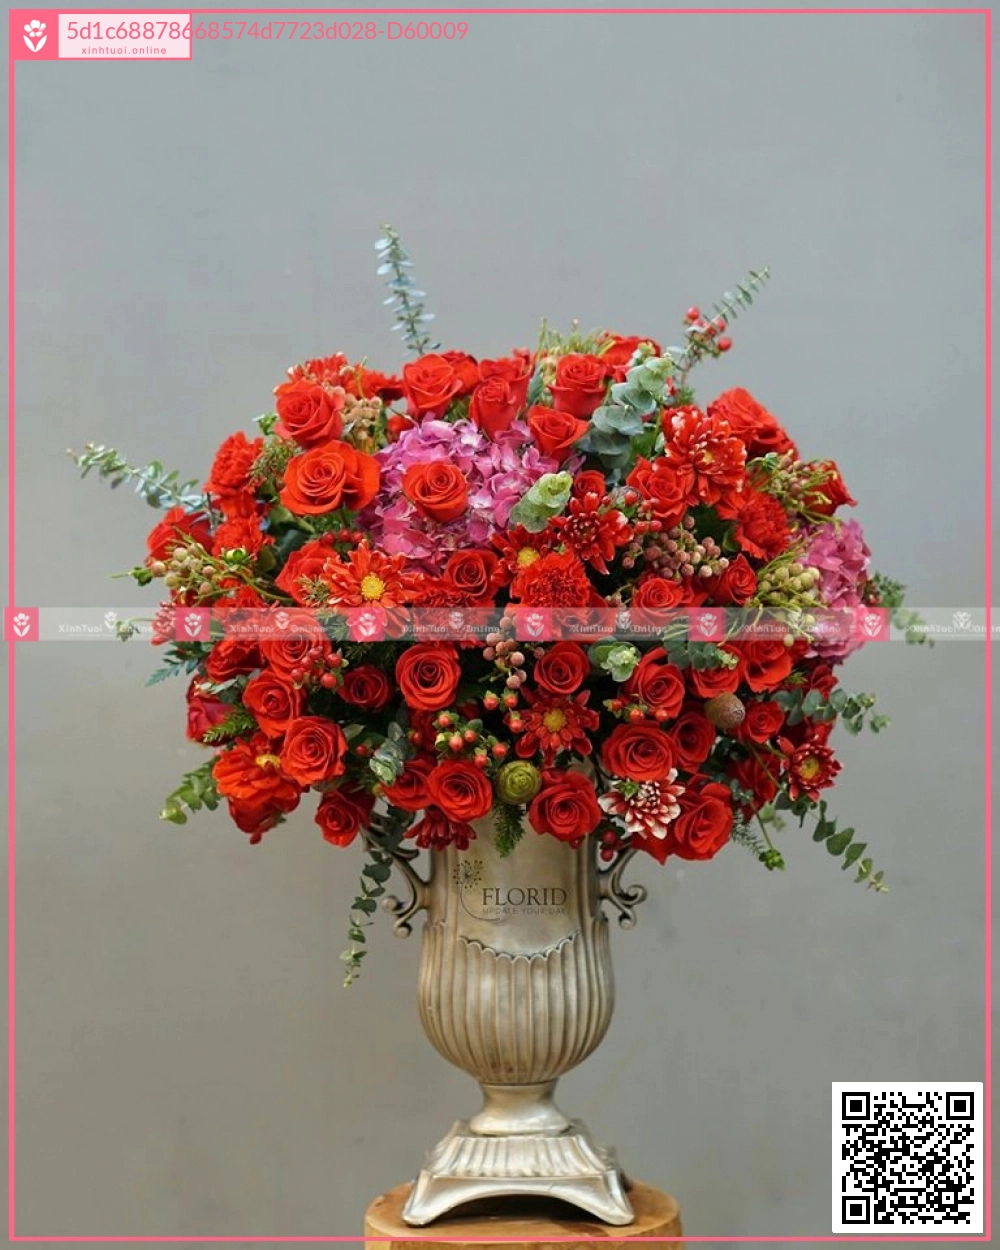 MS 1370: ENTERNAL FLAME - D60009 - xinhtuoi.online